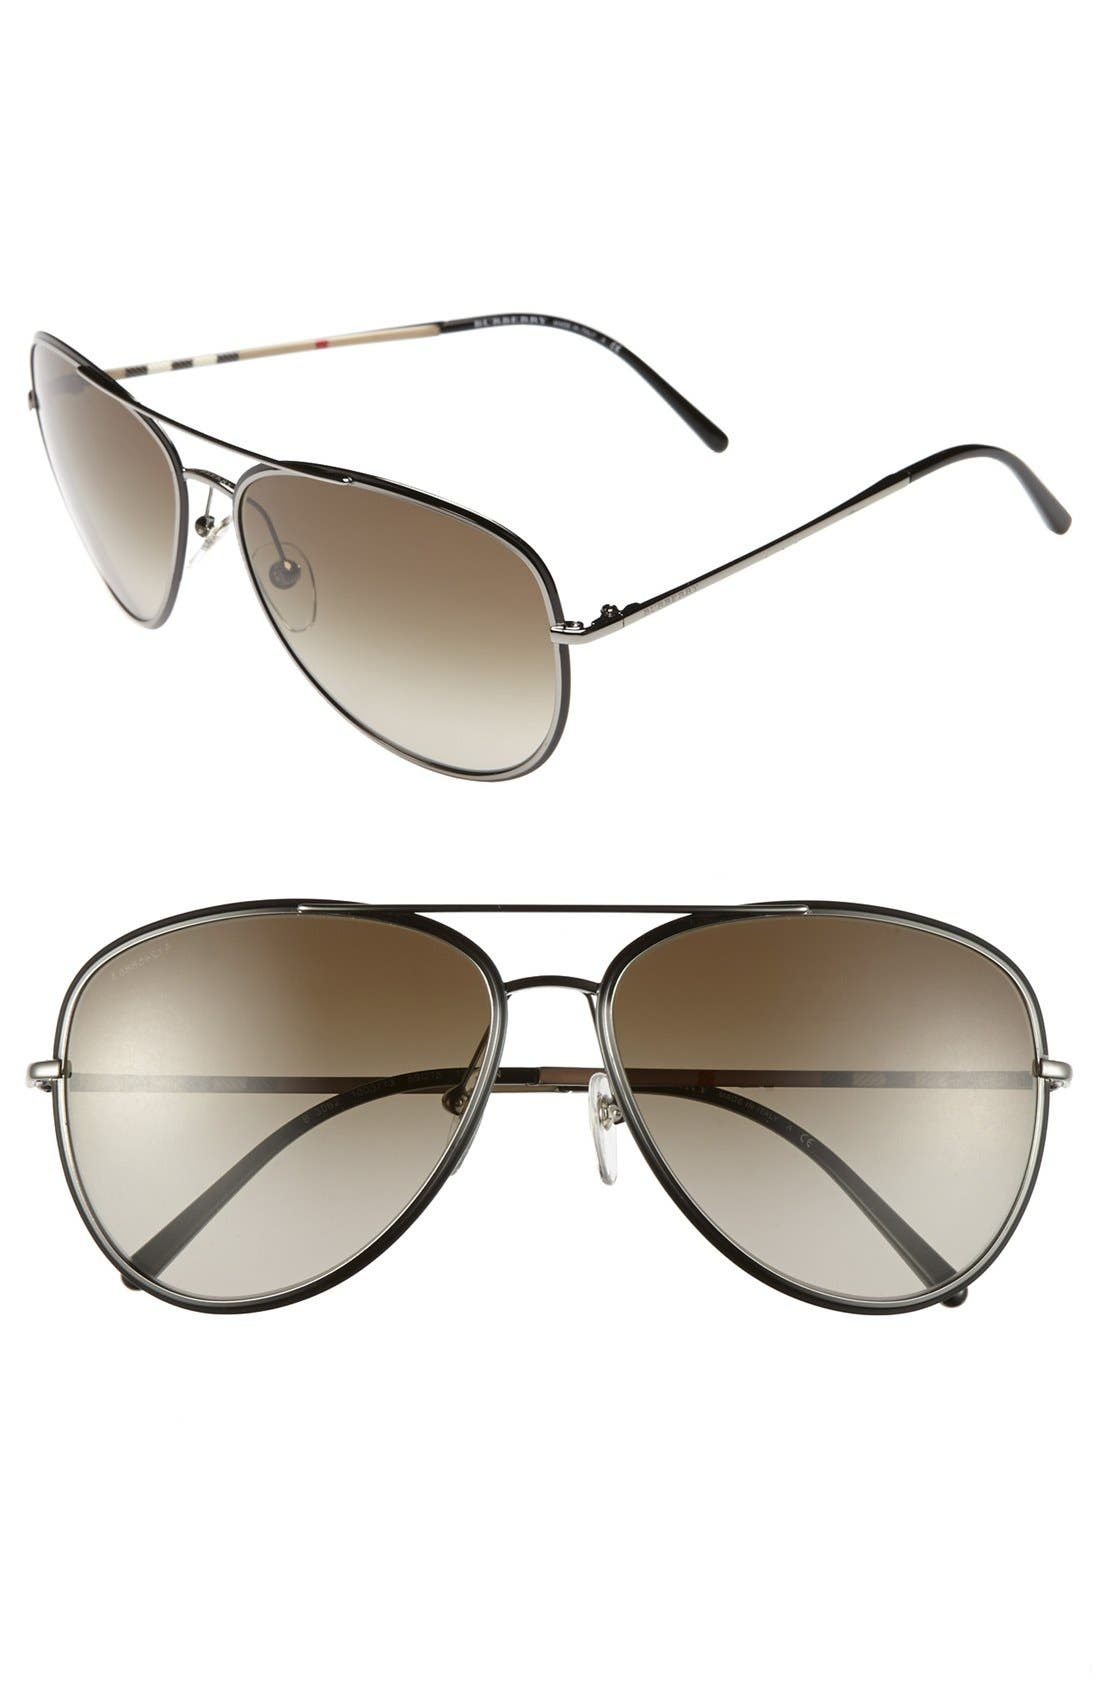 Main Image - Burberry 59mm Aviator Sunglasses